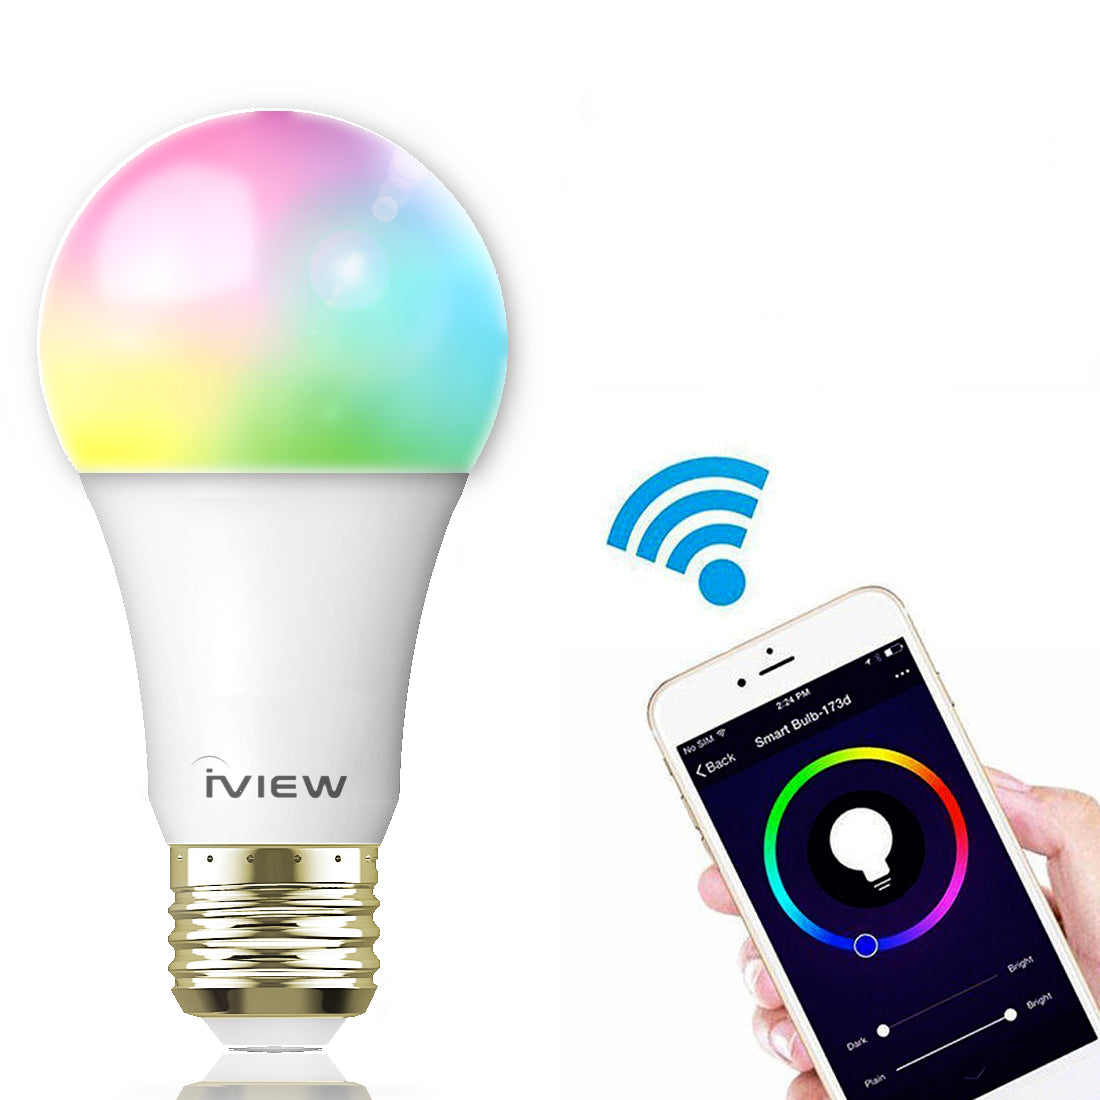 These Multicolor LED Smart Bulbs are $14, and they're just as good as $50 Philips Hue Bulbs